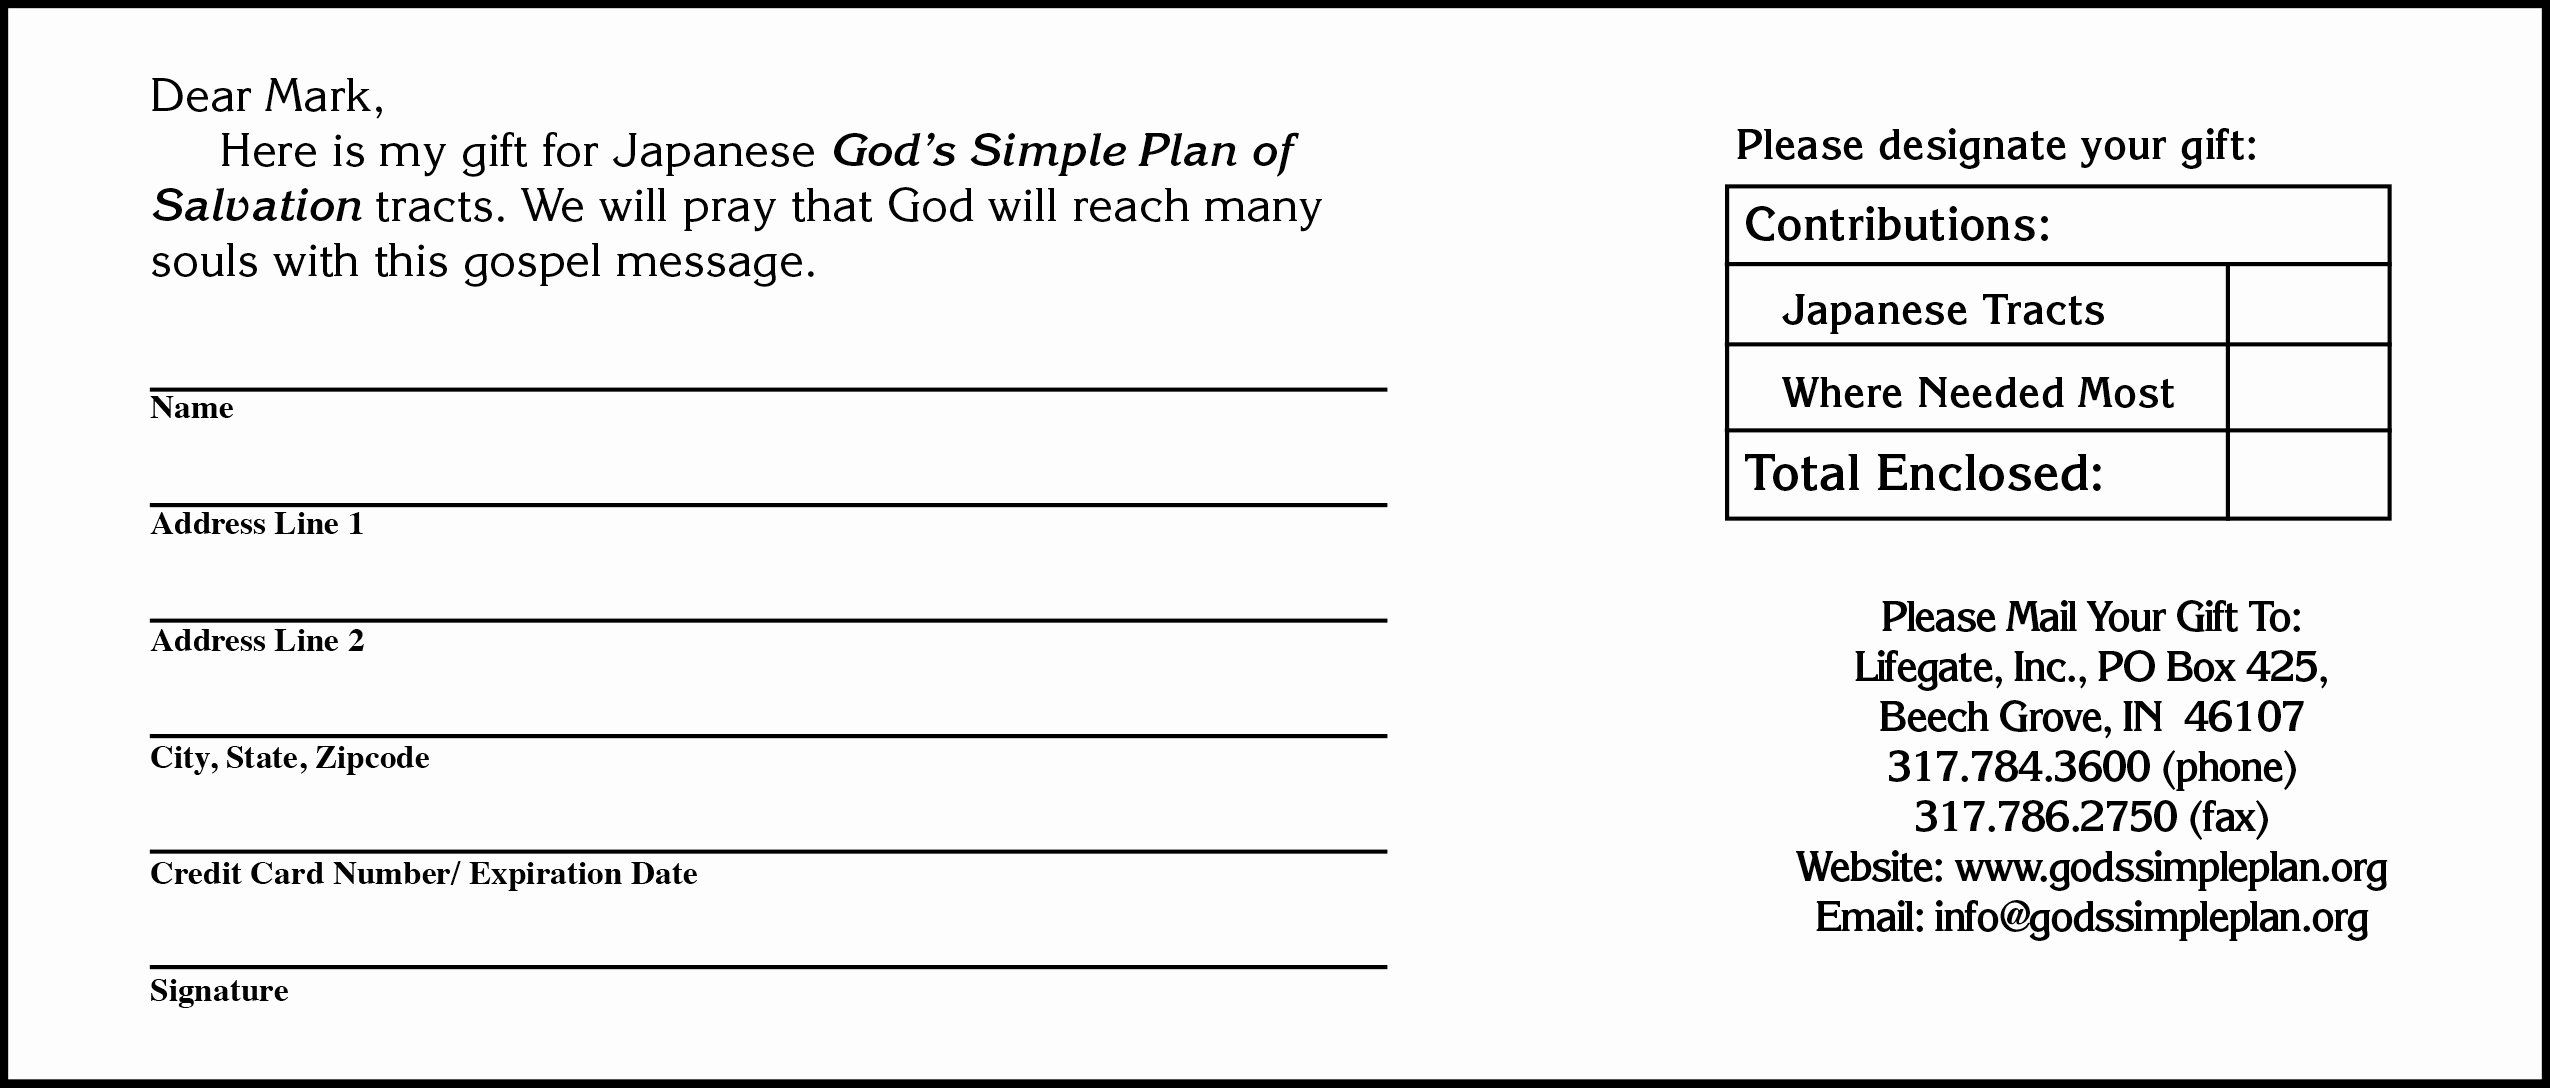 Printable Donation Form Template Awesome 6 Donation Form Templates Excel Pdf Formats Donation Request Form Donation Form Card Templates Free